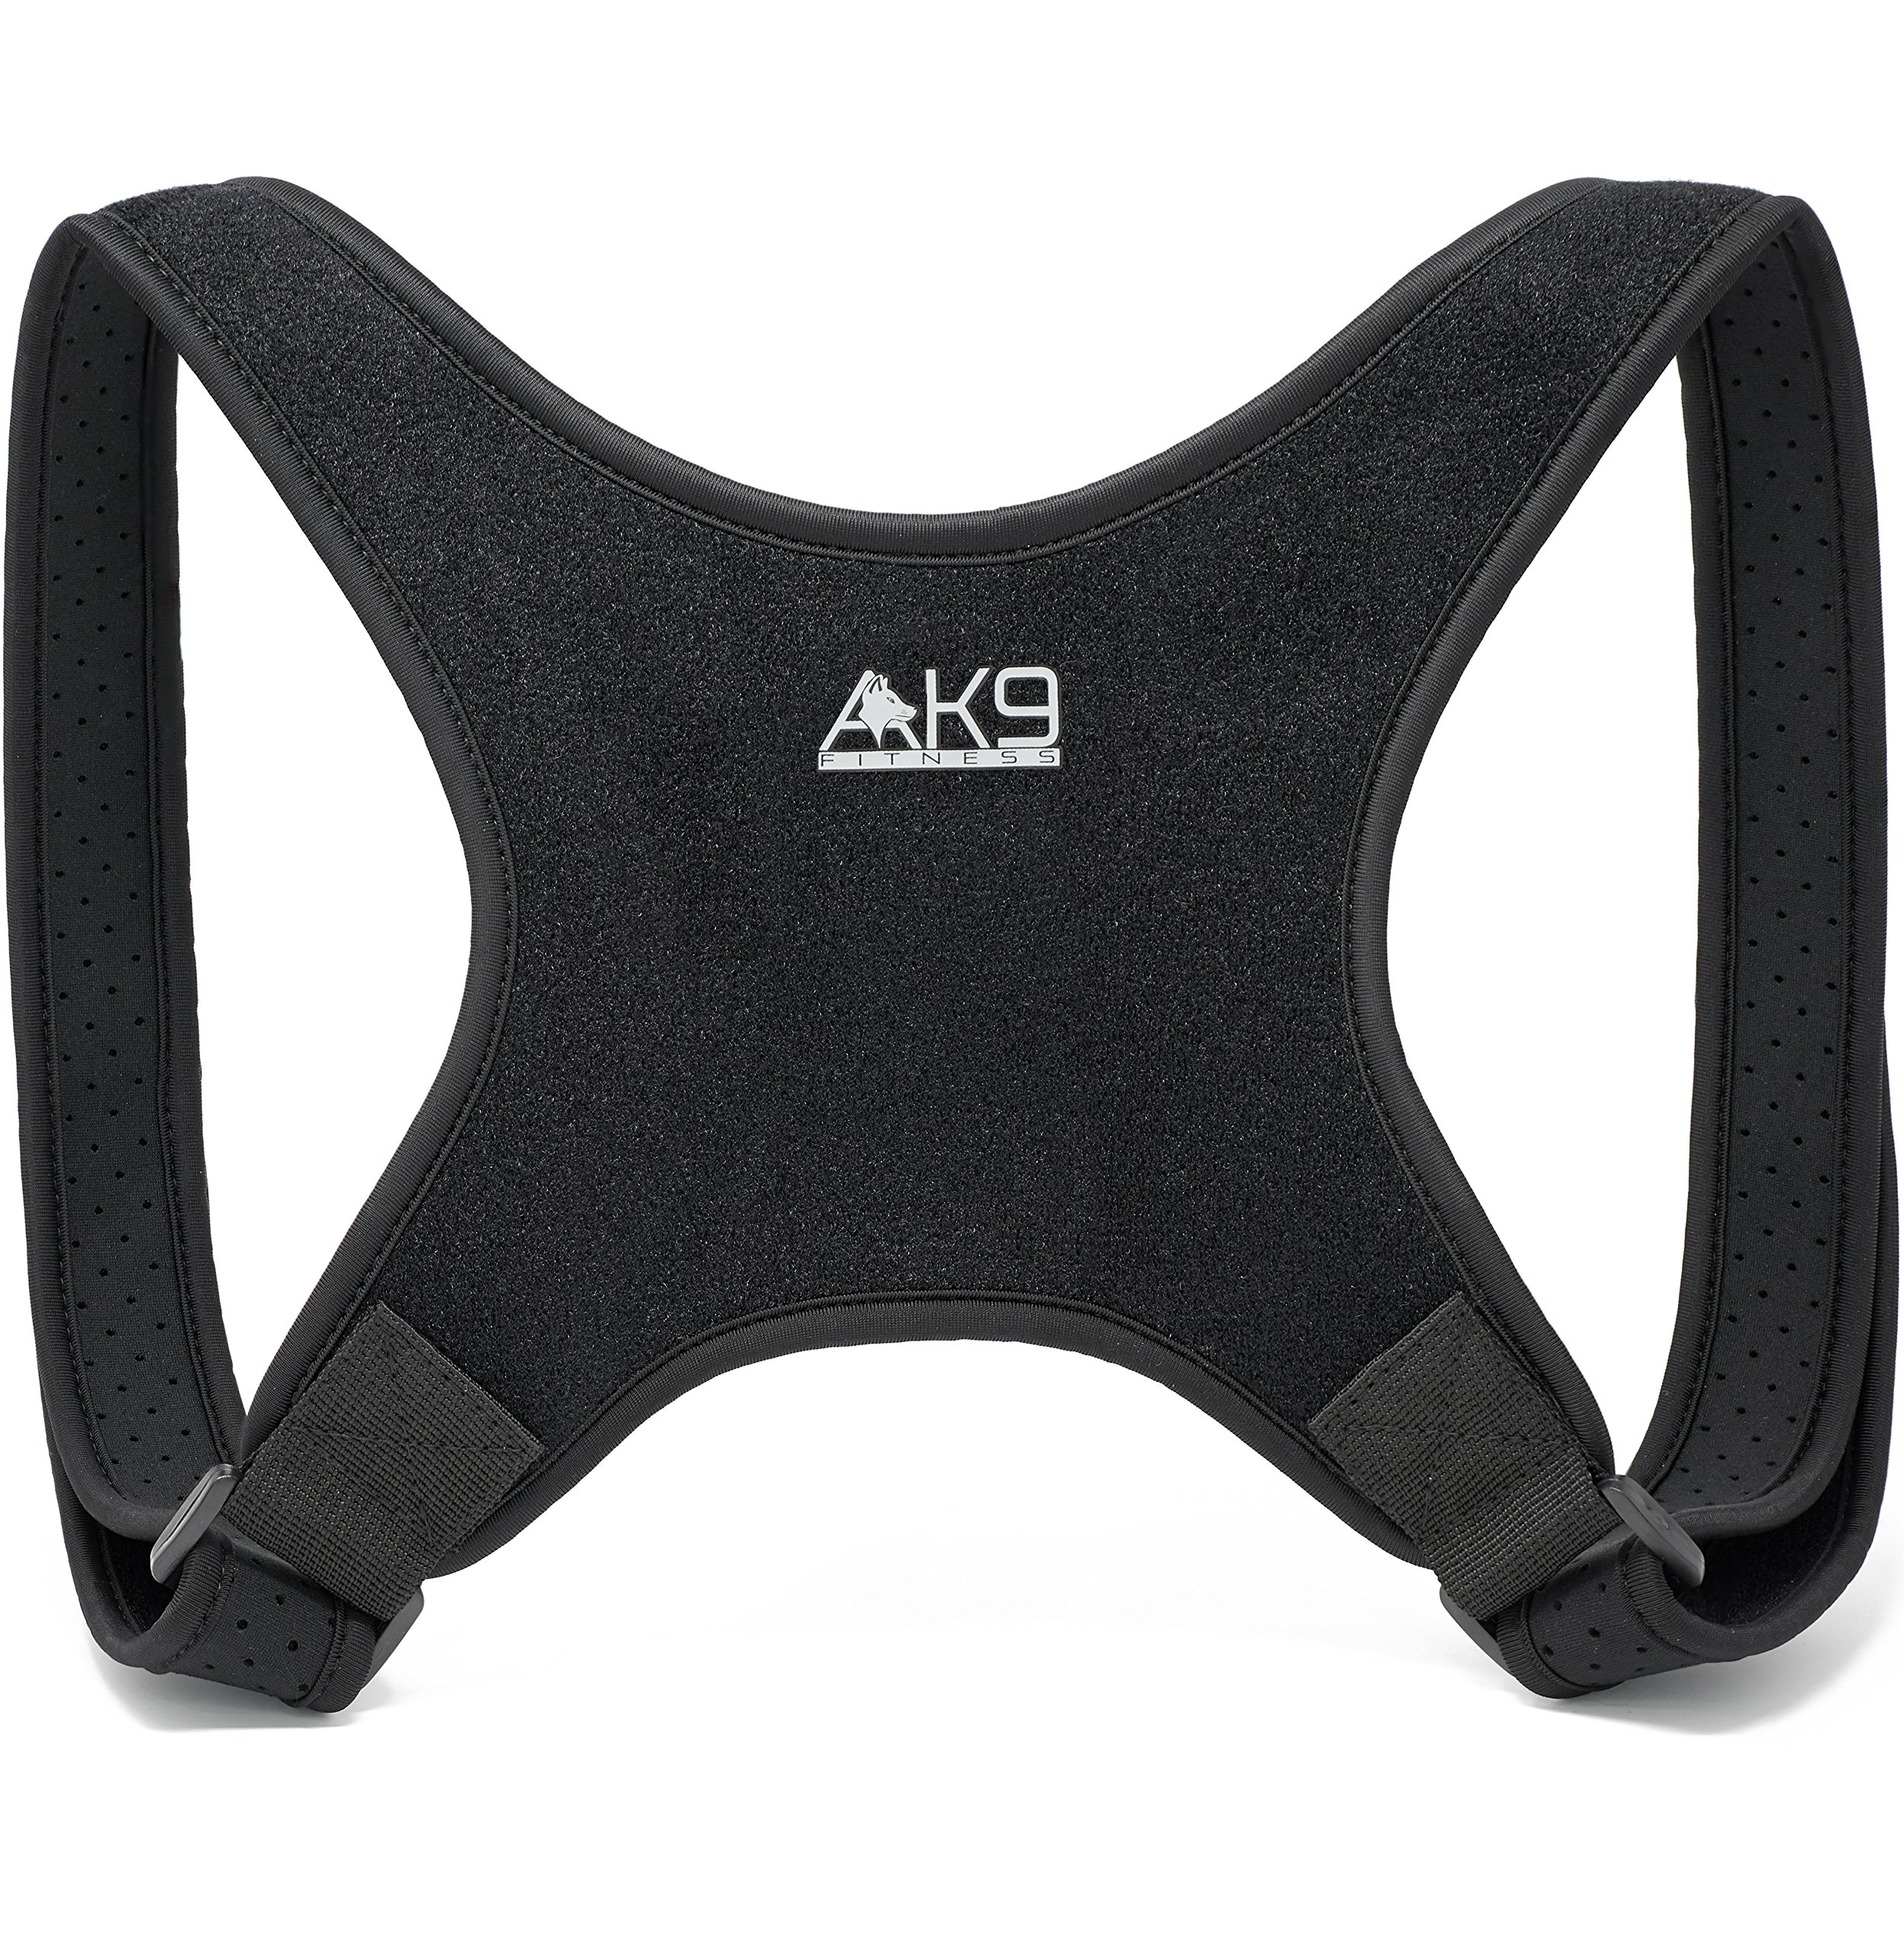 Posture Corrector for Women and Men - Thinner Straps Eliminate Underarm Discomfort! Adjustable Shoulder Brace to Fix Forward Head Posture/Kyphosis for Back & Neck Pain Relief - Invisible Under Clothes